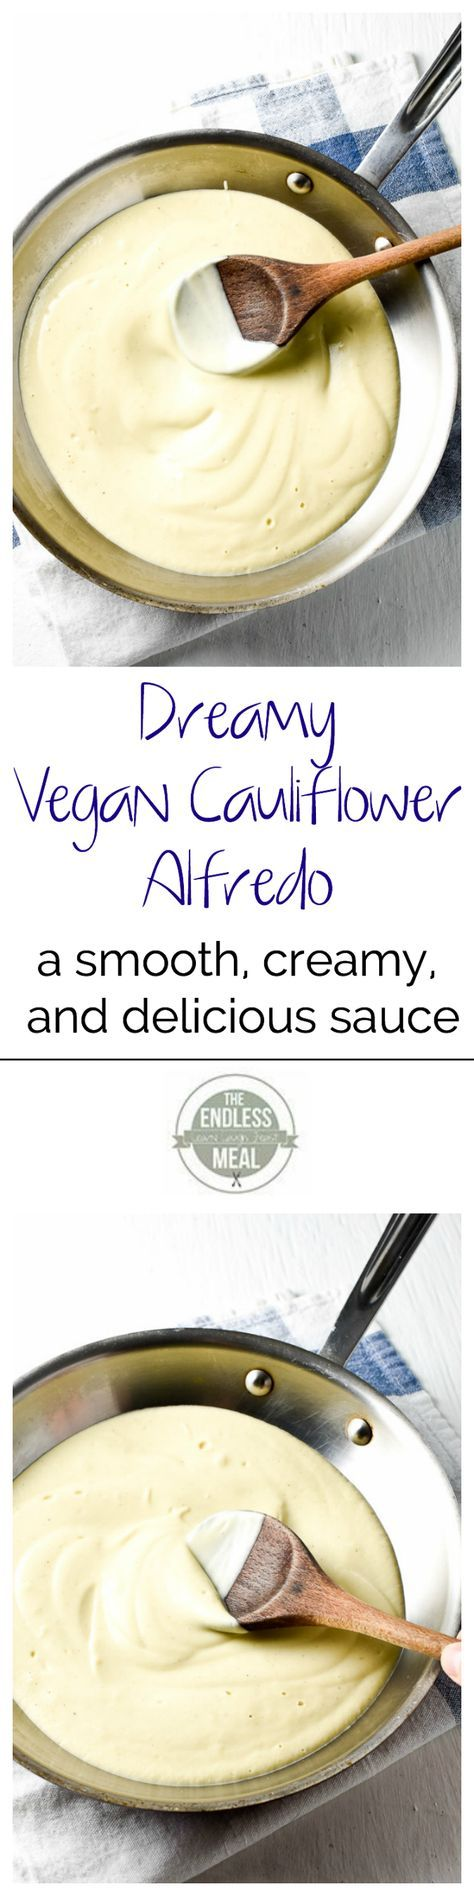 Dreamy Vegan Cauliflower Alfredo   The Endless Meal. *Be sure to use gluten free tamari or coconut aminos in place of soy sauce*